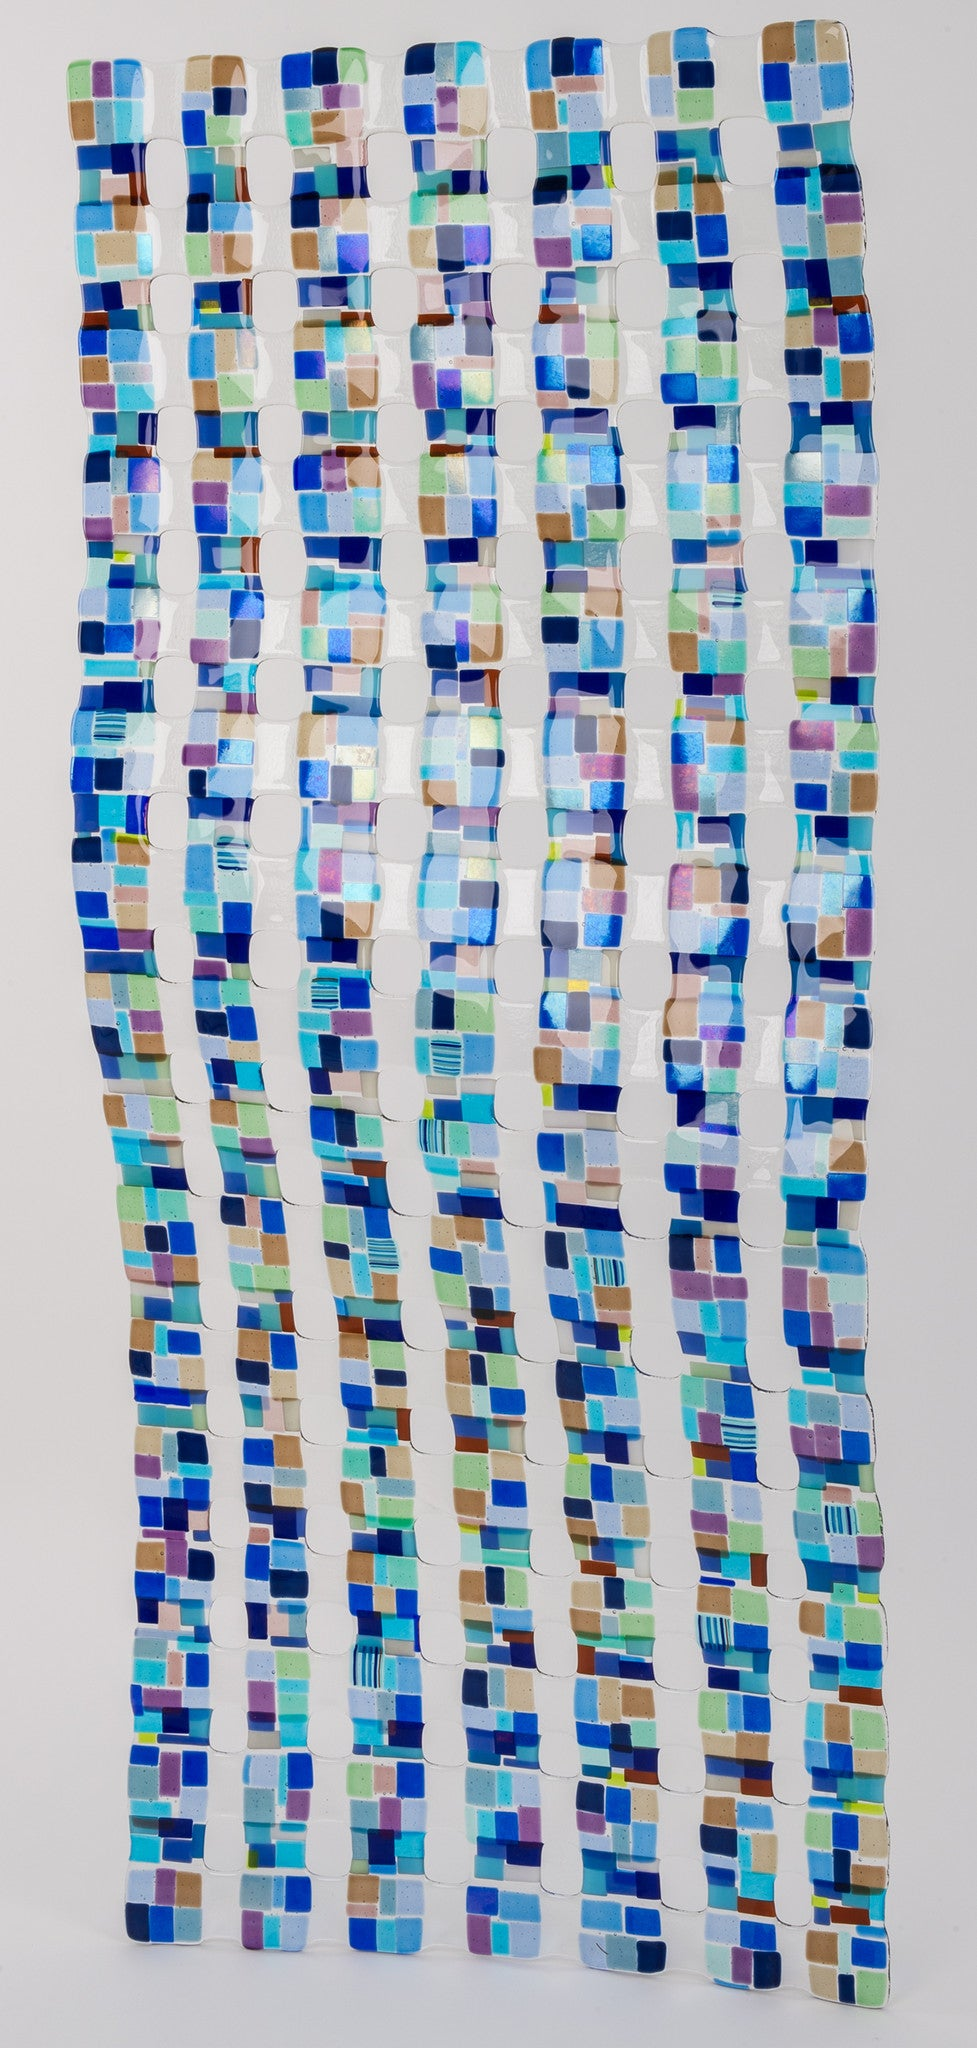 Large Retro Mesh 2 / 24 x 60 / fused and bent glass